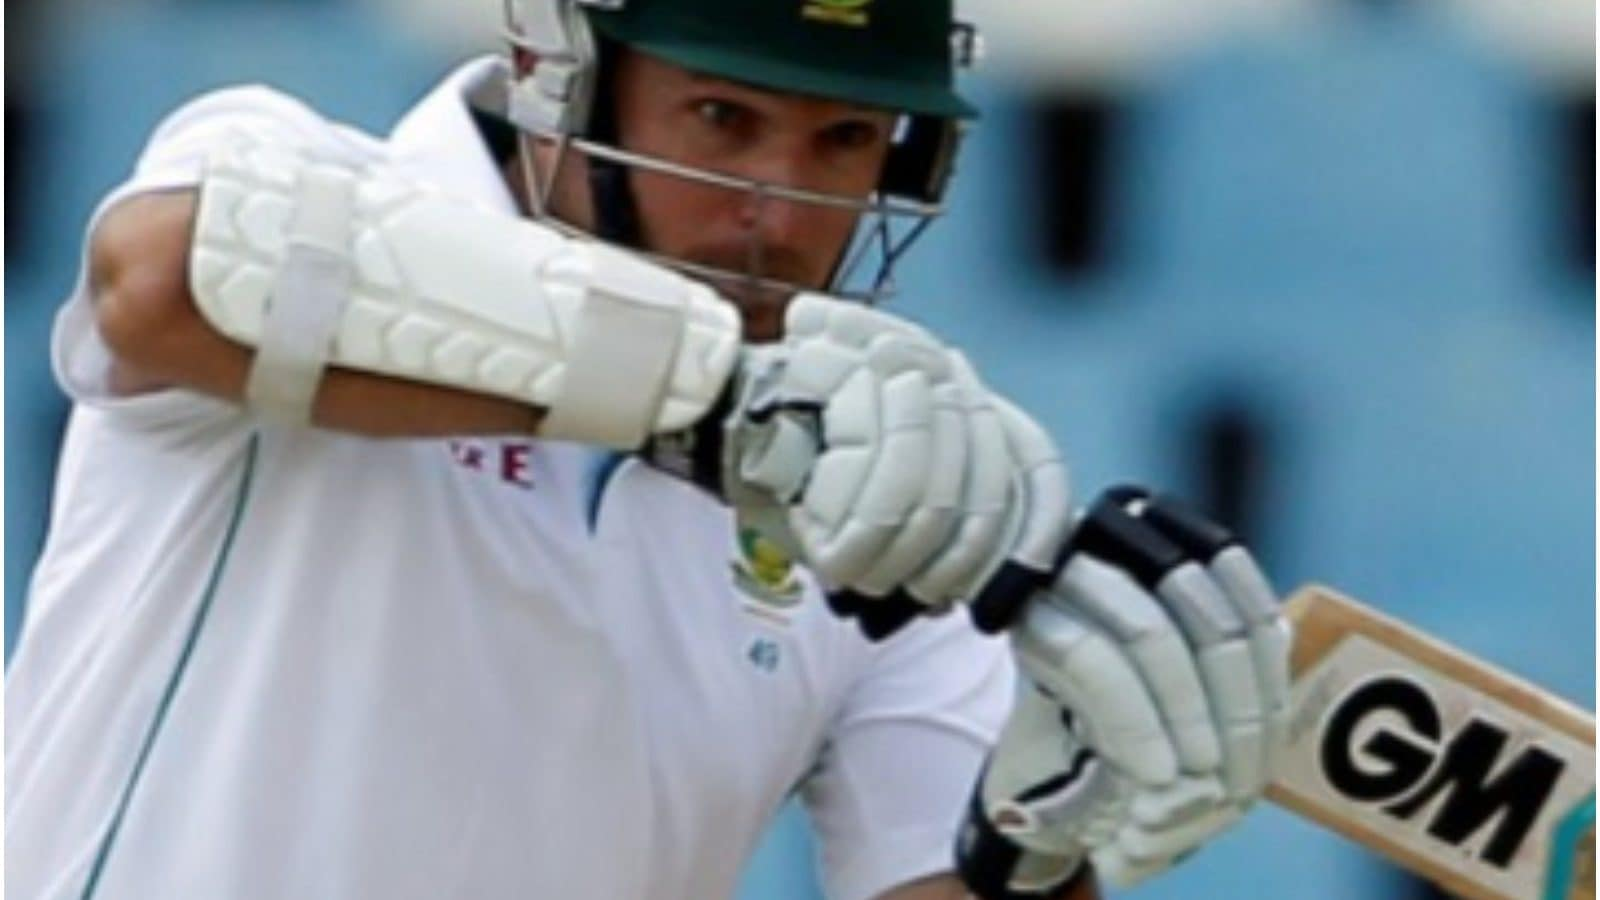 Graeme Smith Became First South African to Score Double Century at Lord's